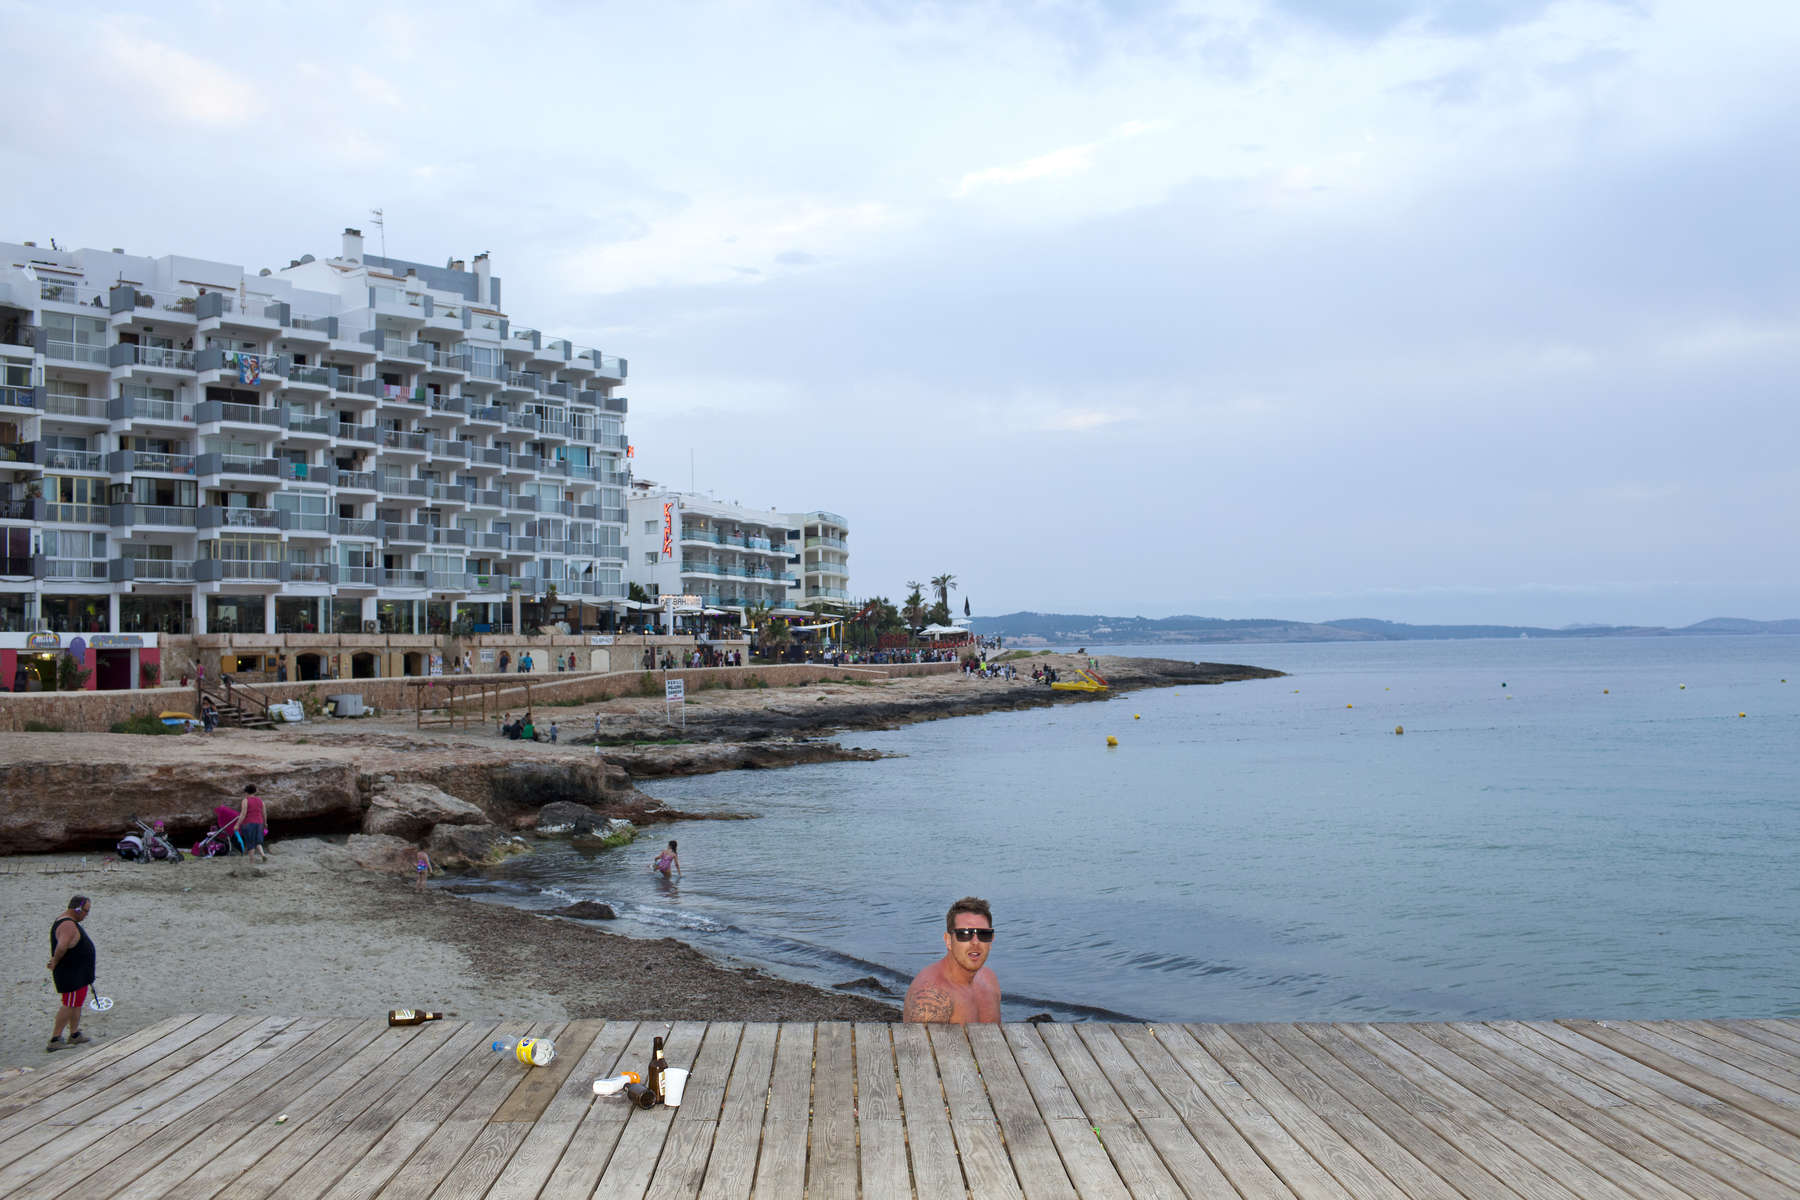 20:58 A man from the British Midlands relieves himself by a beach in San Antonio, Ibiza, as children play behind him. The fine for urinating in the street and public spaces is up to €1,500.